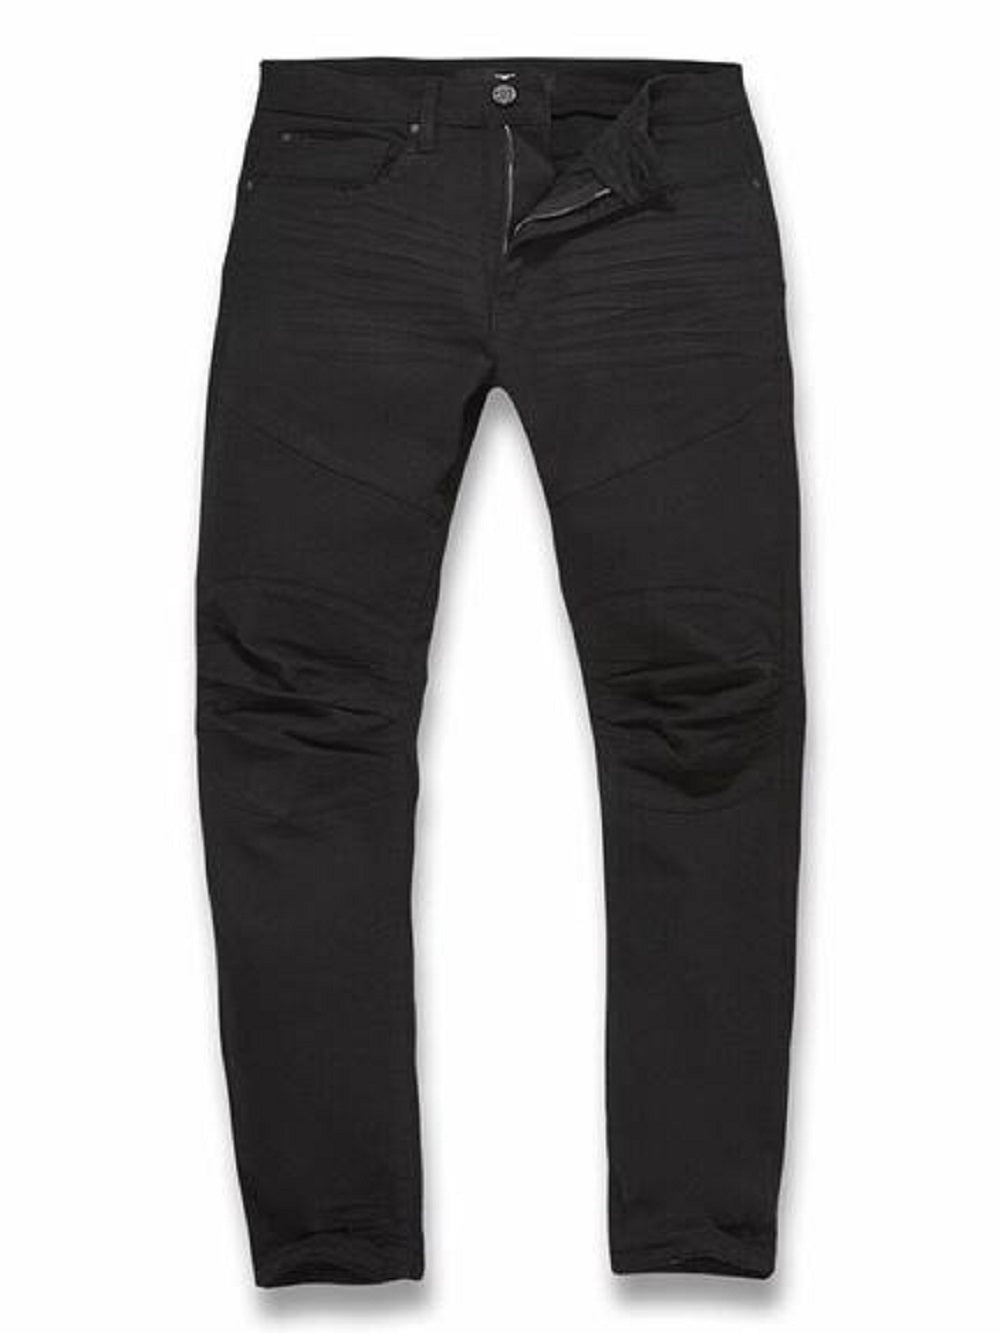 JORDAN CRAIG LEXINGTON MOTO DENIM - JET BLACK